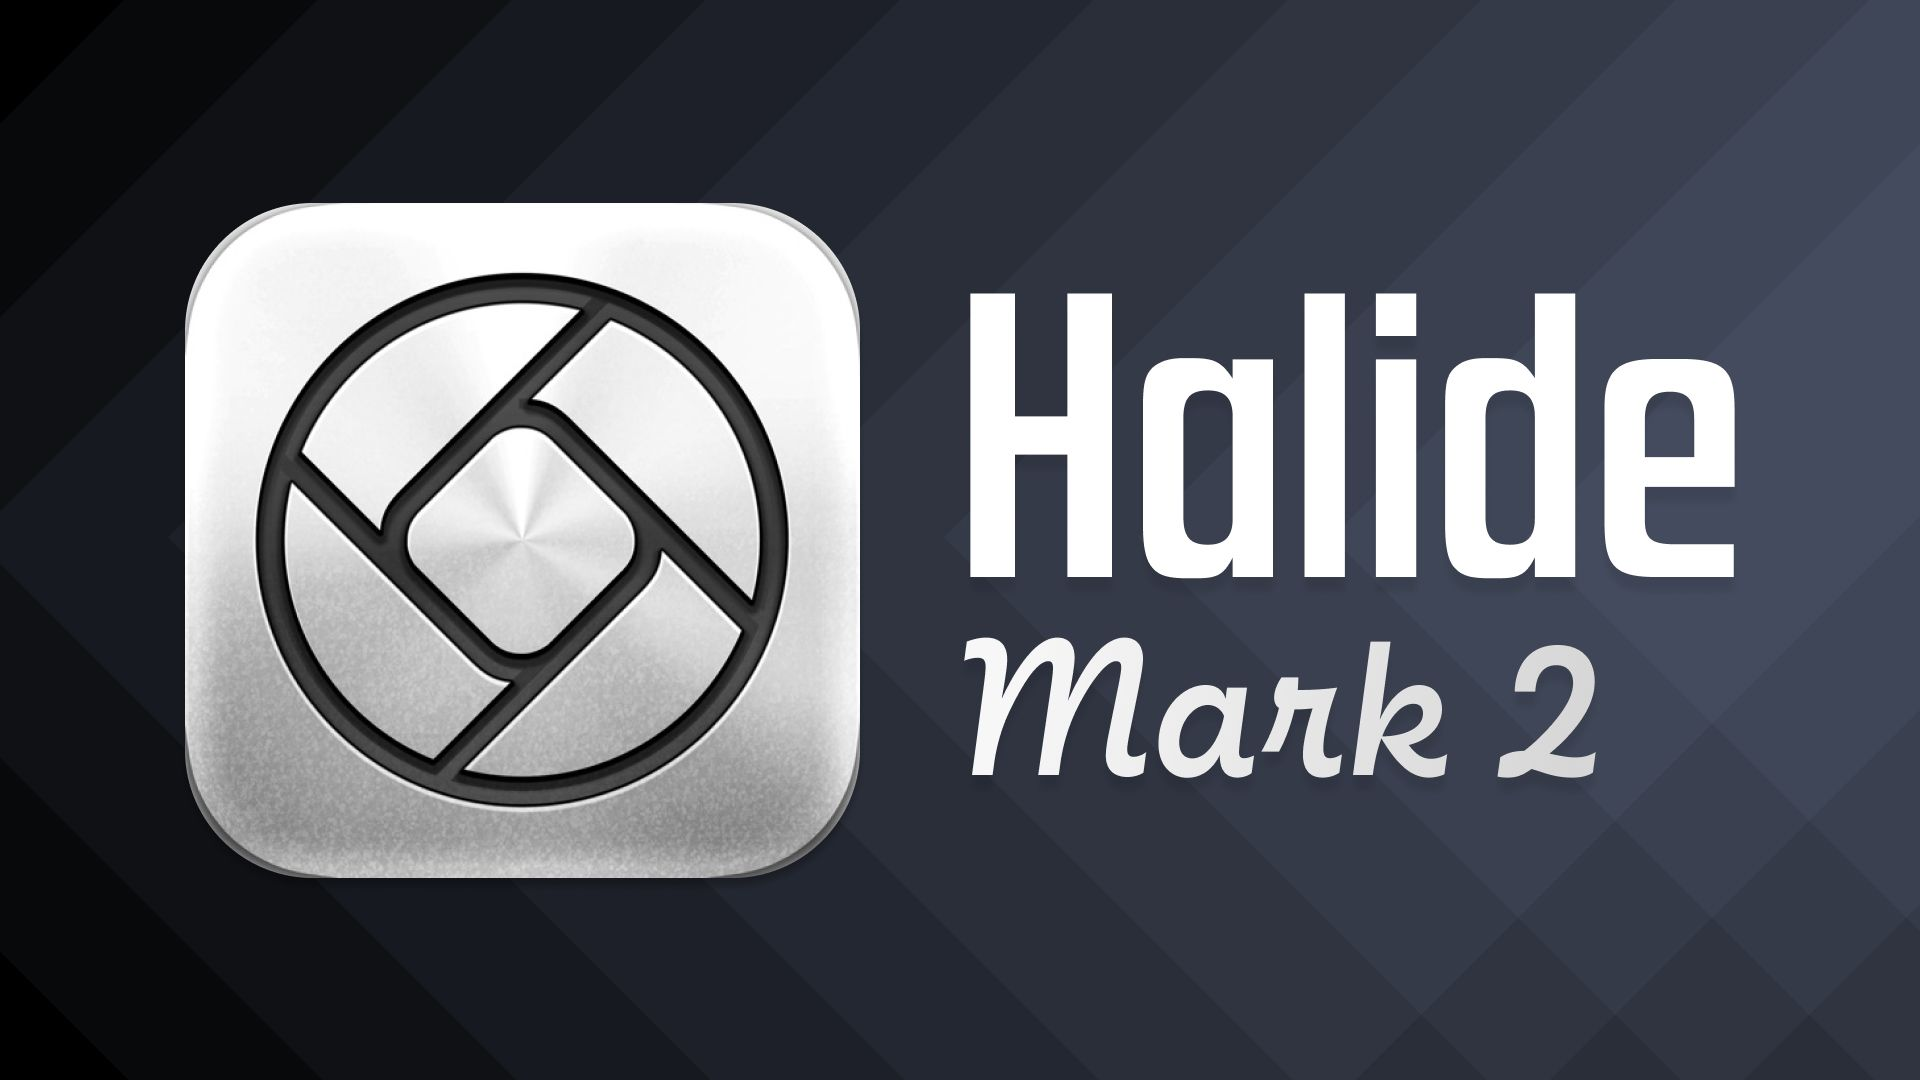 Would you pay $30 for a camera app? Halide Mark 2 makes a strong argument